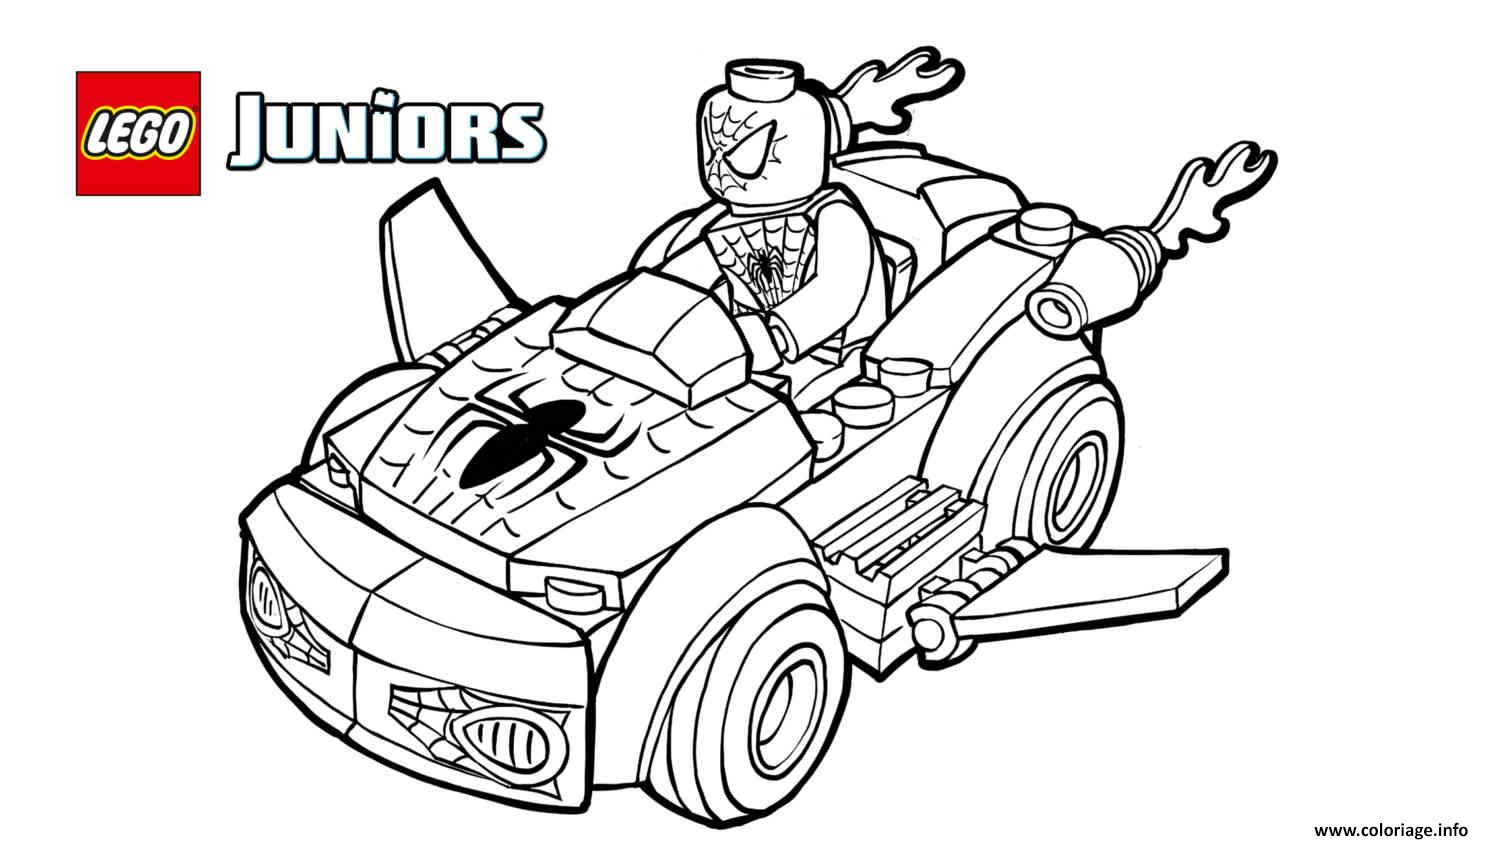 Coloriage lego spiderman 2 voiture lego dessin - Dessin lego a colorier ...